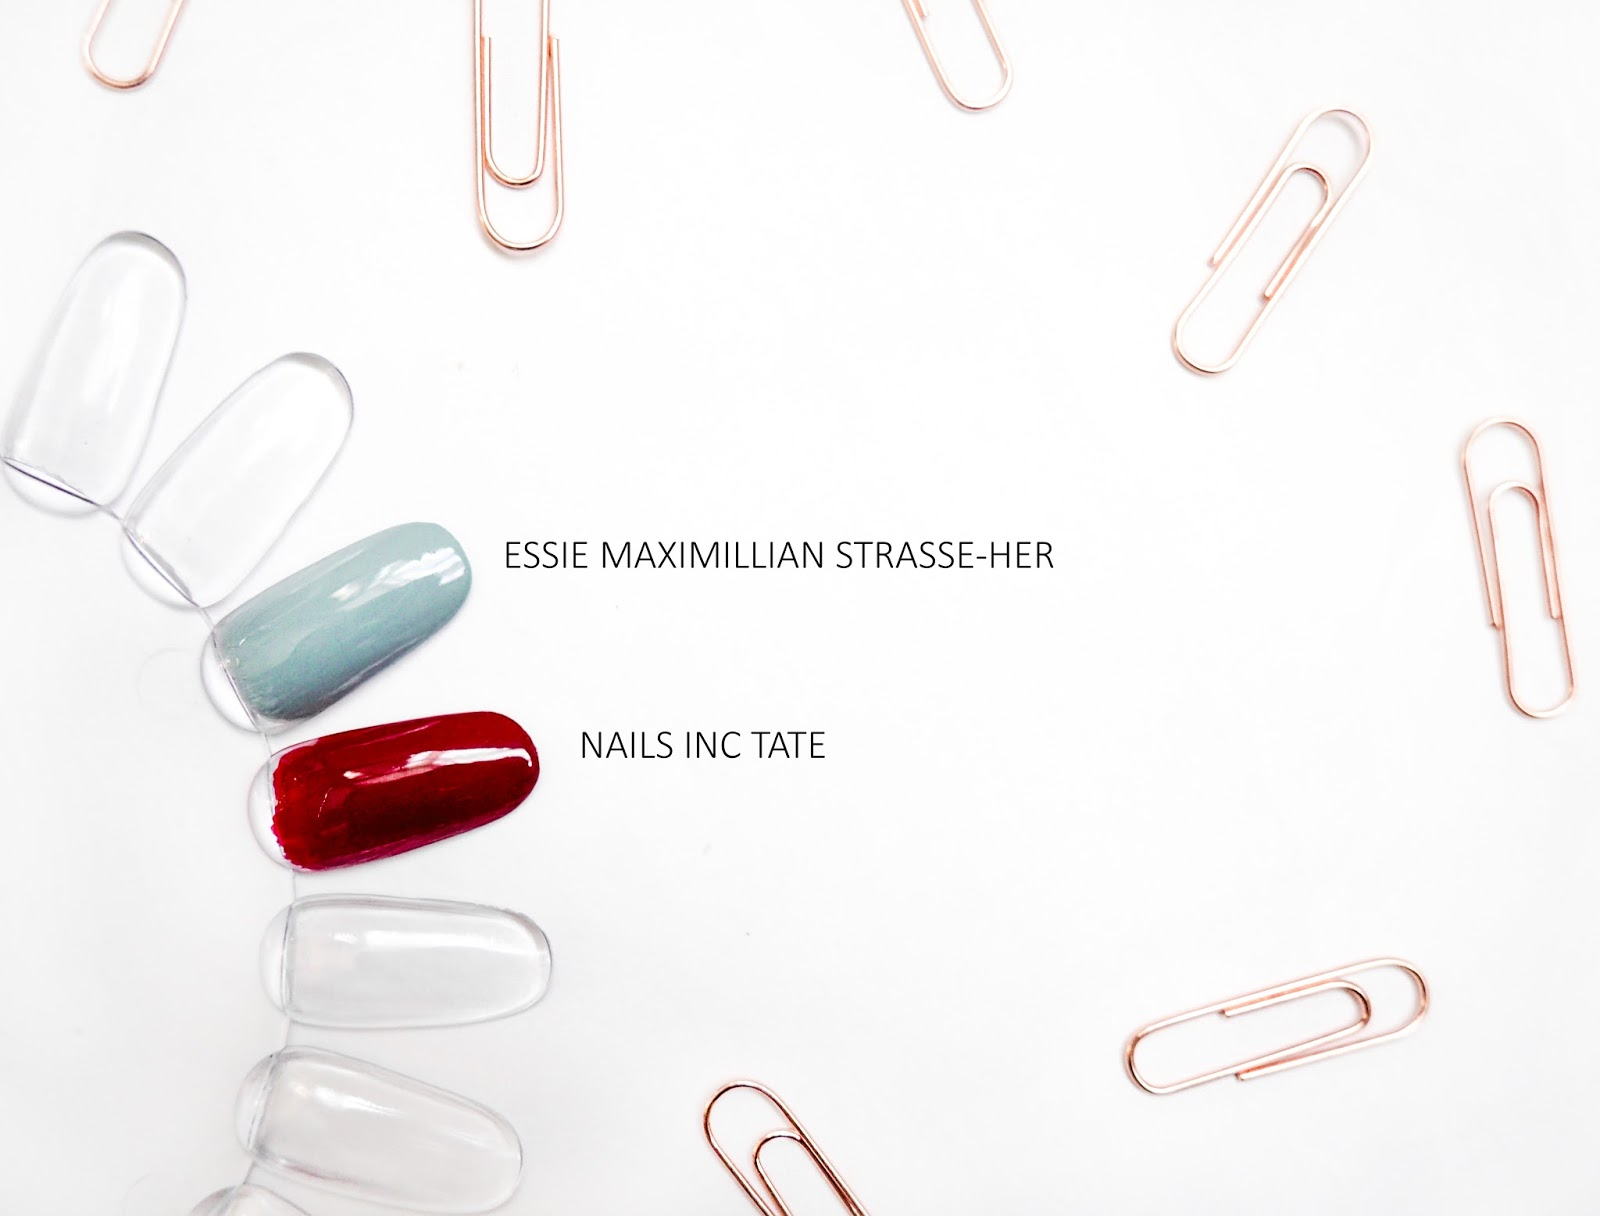 Nails Inc Tate Essie Maximillian Strasse-Her Swatches